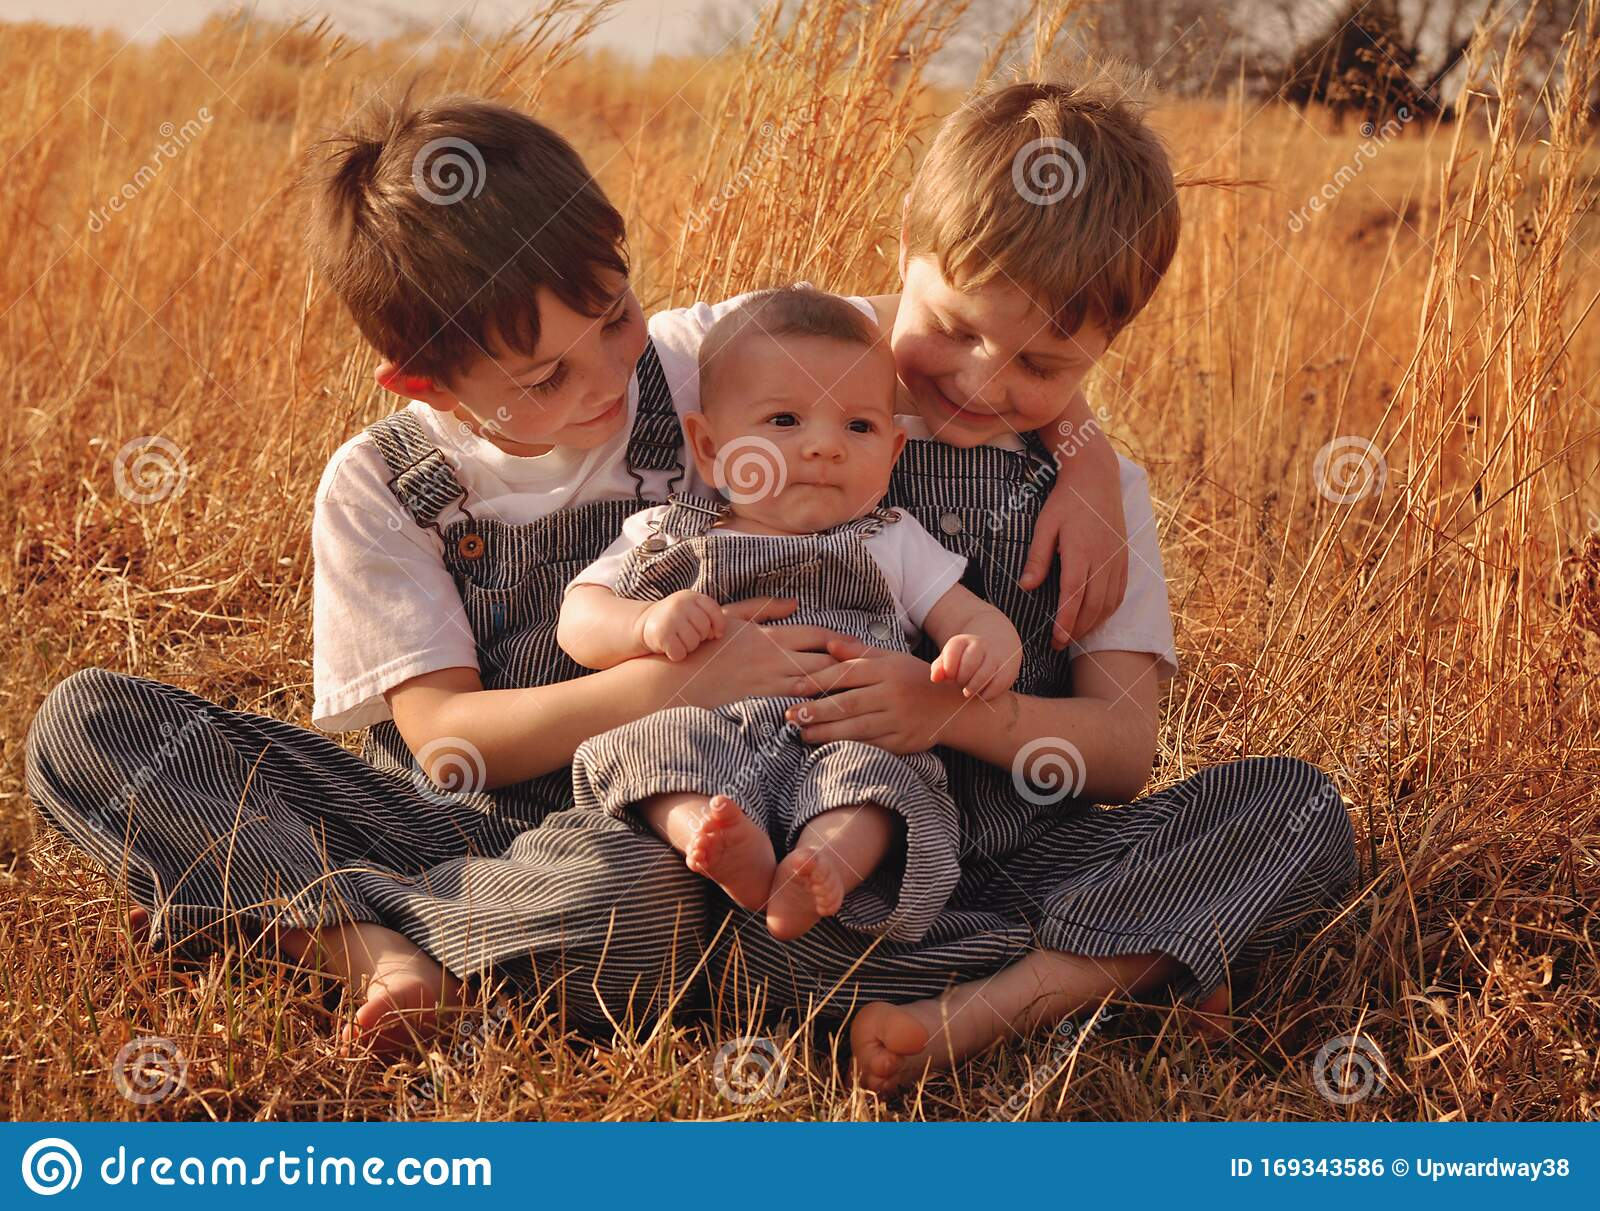 343 Boys Overalls Photos - Free & Royalty-Free Stock Photos from Dreamstime